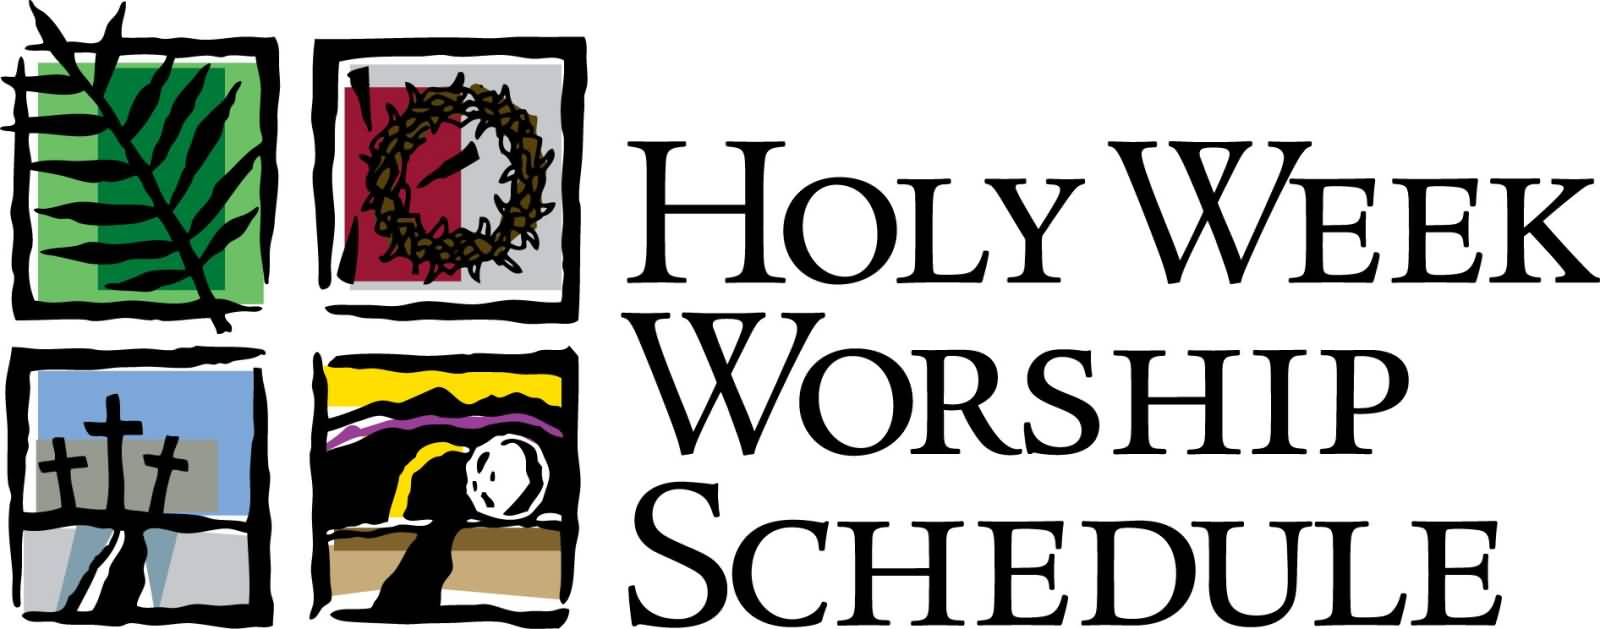 Holy week clipart colour. Family at getdrawings com